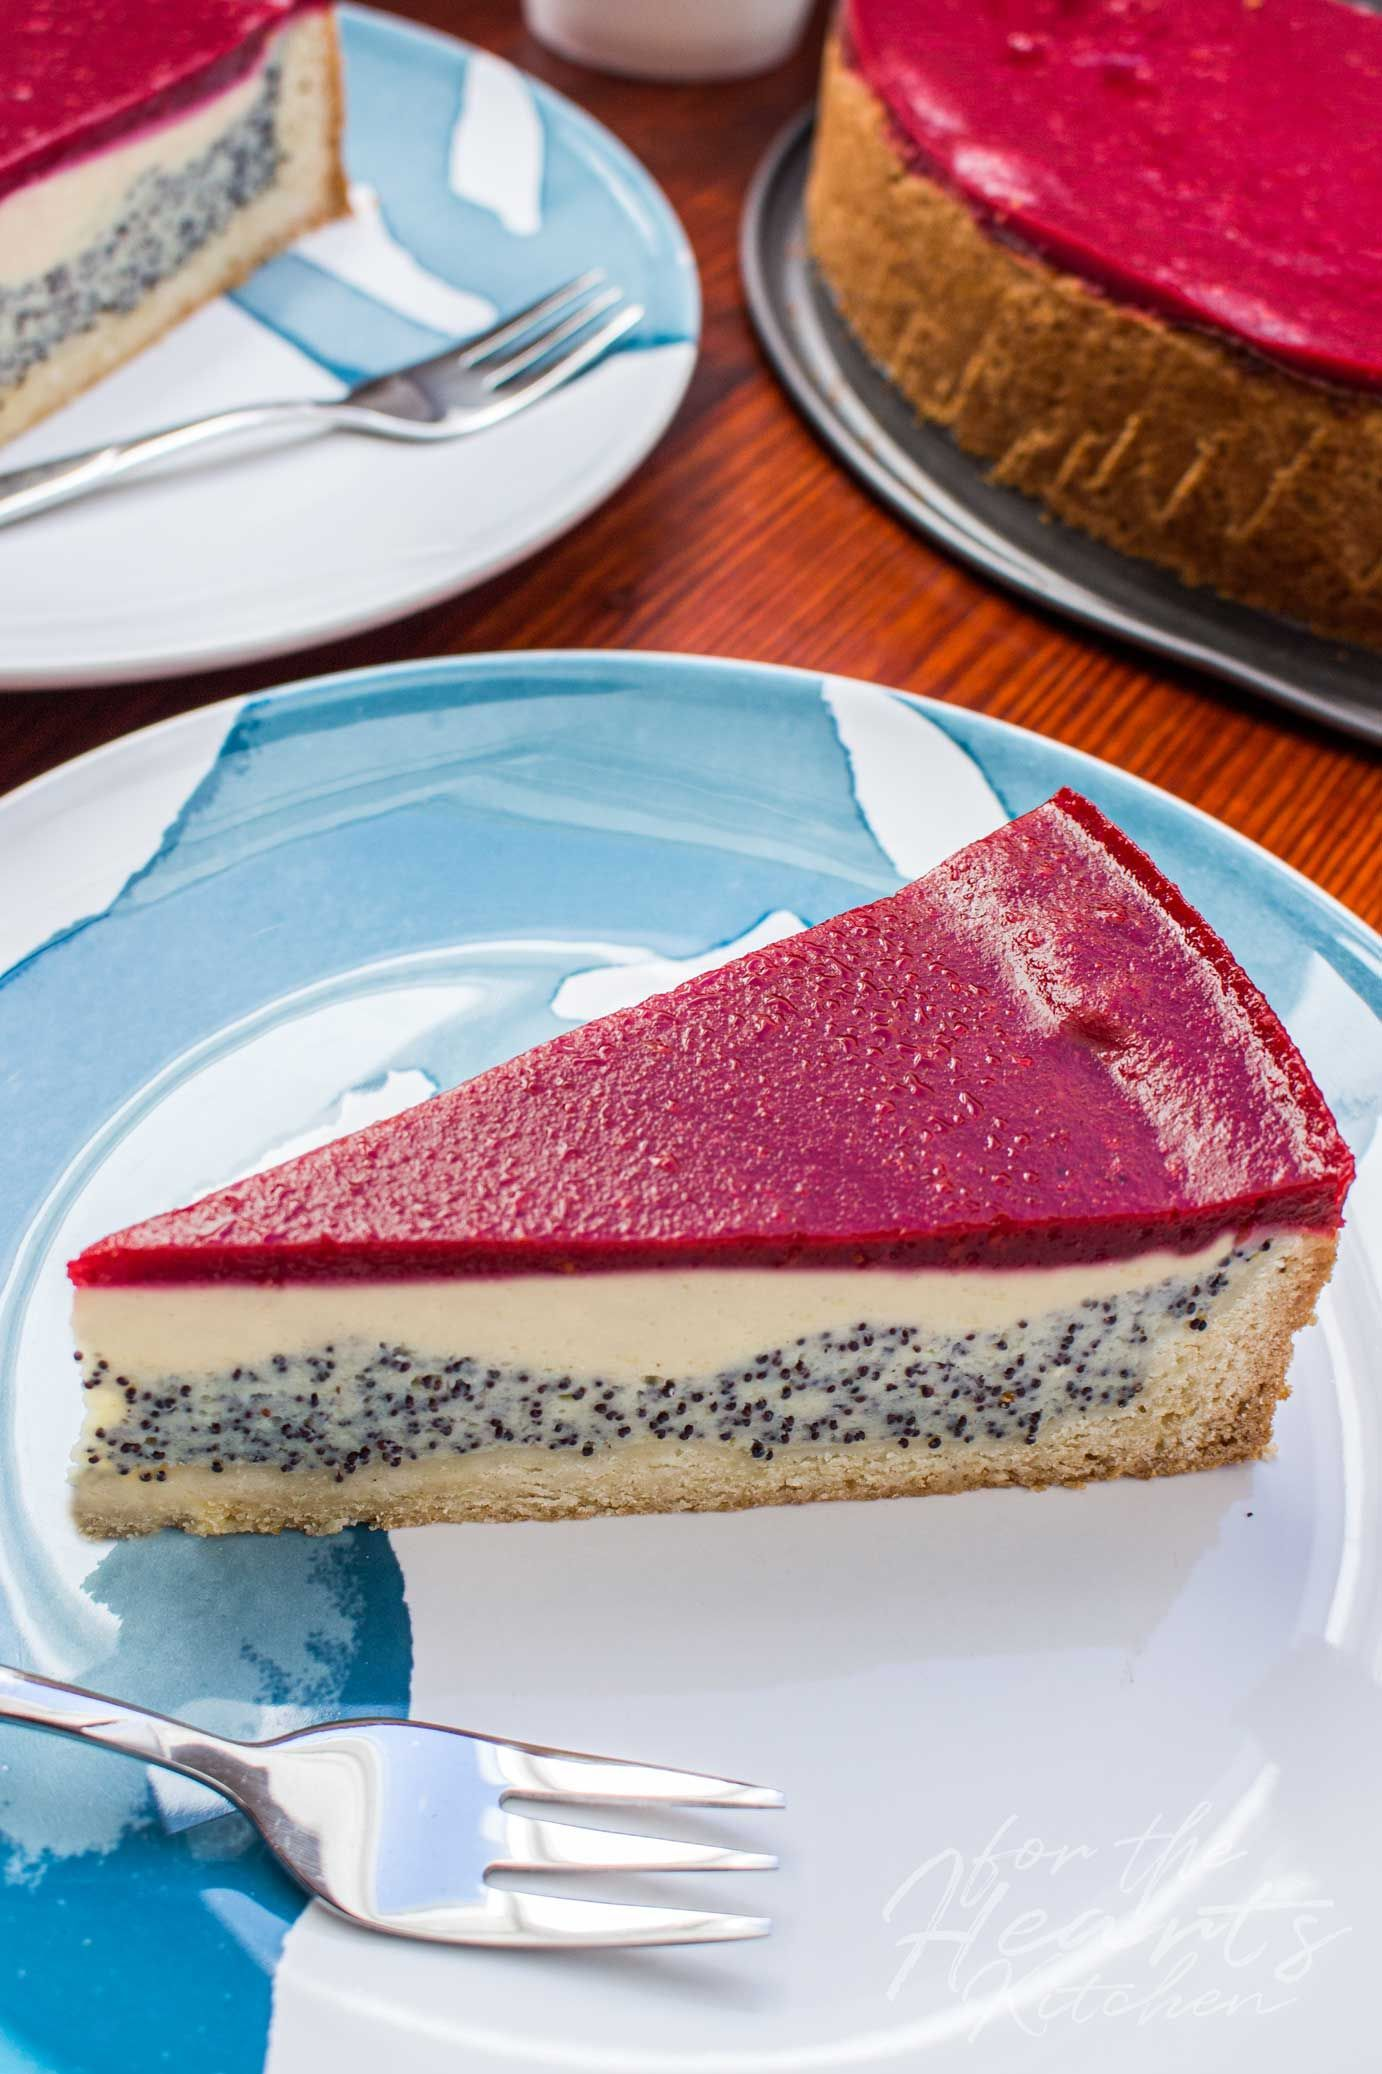 Vegan Poppyseed Cheesecake with Fruity Raspberry Mirror for the Hearts Kitchen | the kitchen with the heart of Christian Schäfer. Creative simple vegan ...#cheesecake #christian #creative #fruity #heart #hearts #kitchen #mirror #poppyseed #raspberry #schäfer #simple #vegan